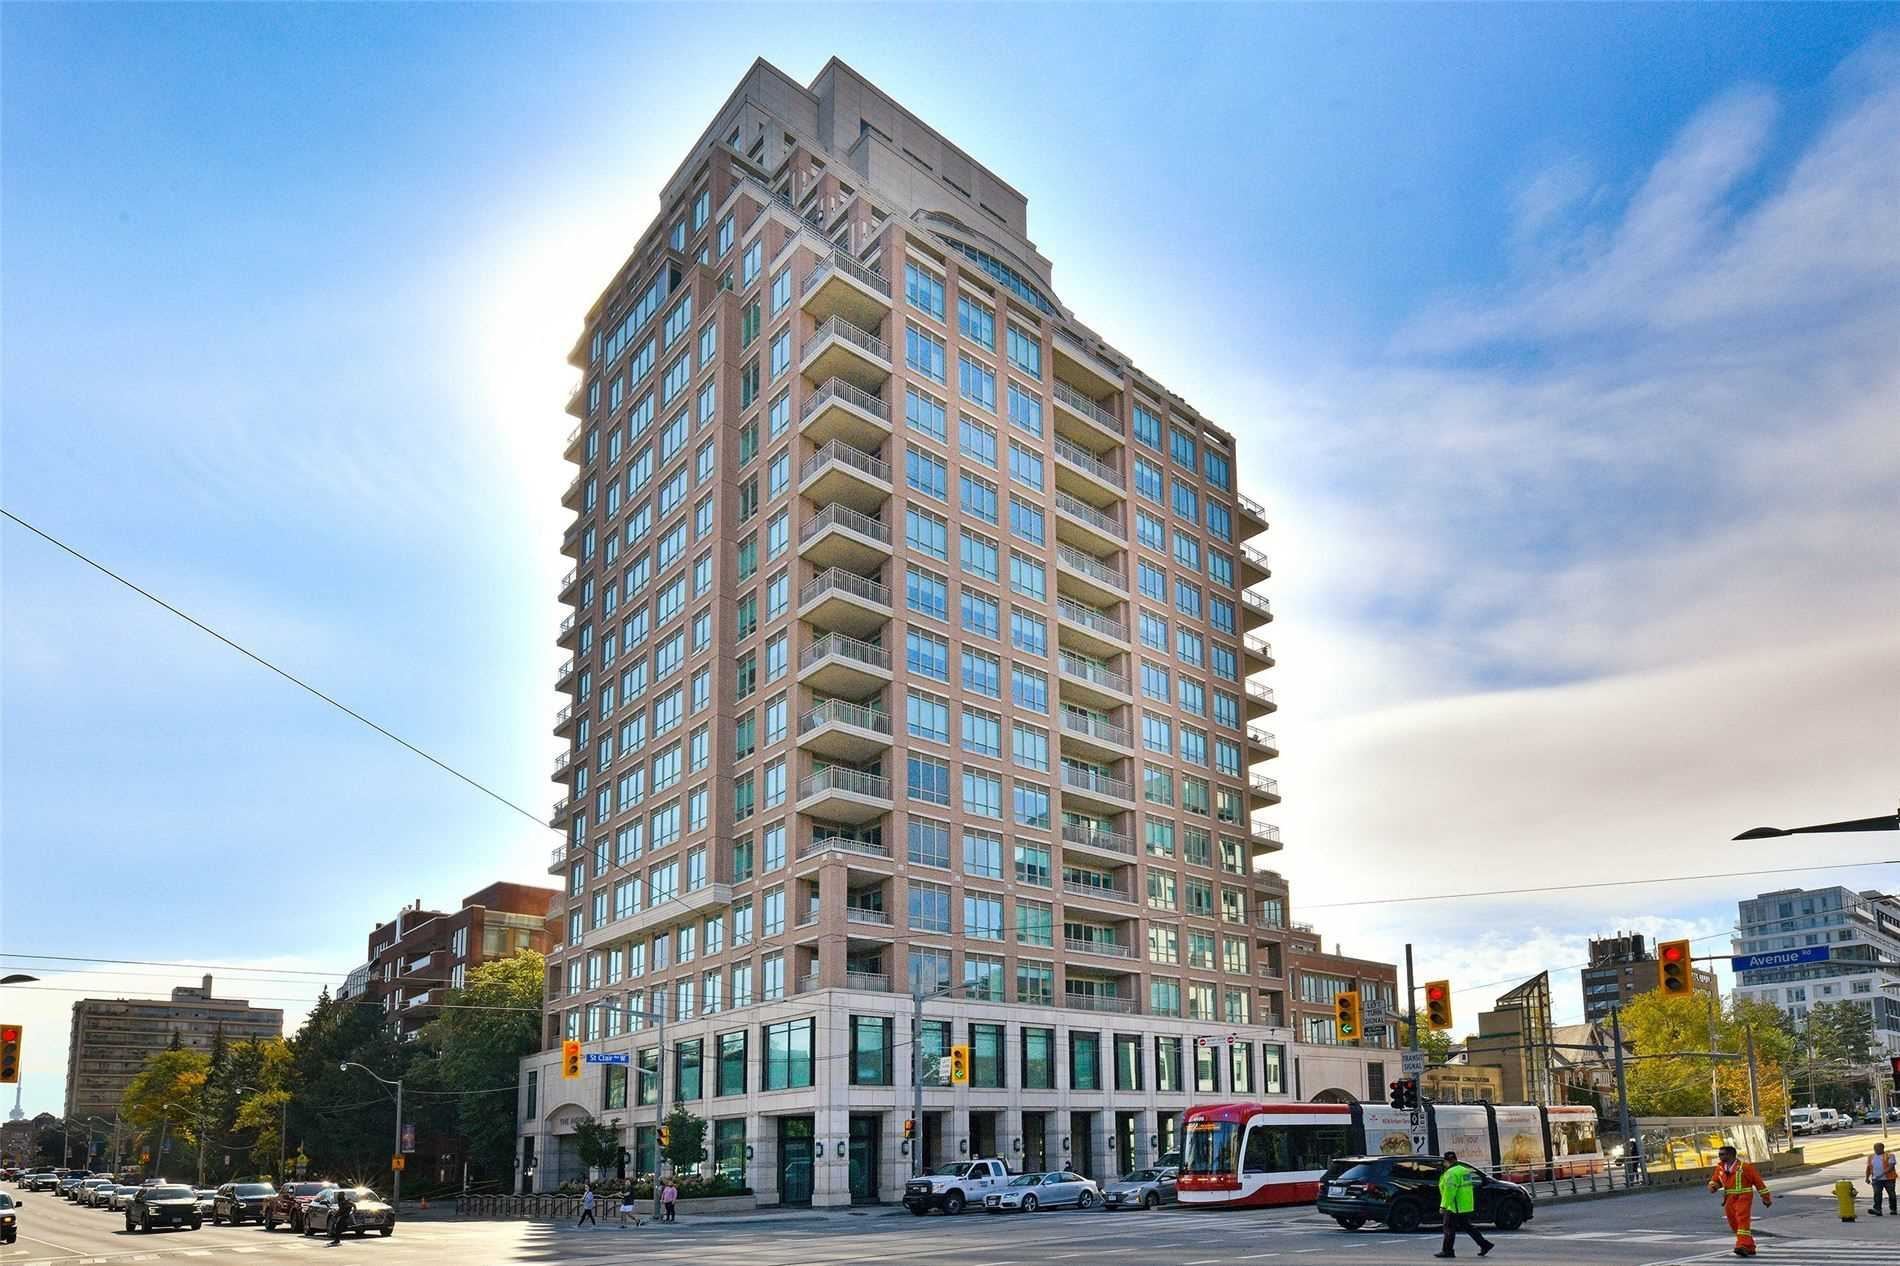 155 St Clair Ave W #301, Toronto, ON M4V0A1 - MLS#: C5400997